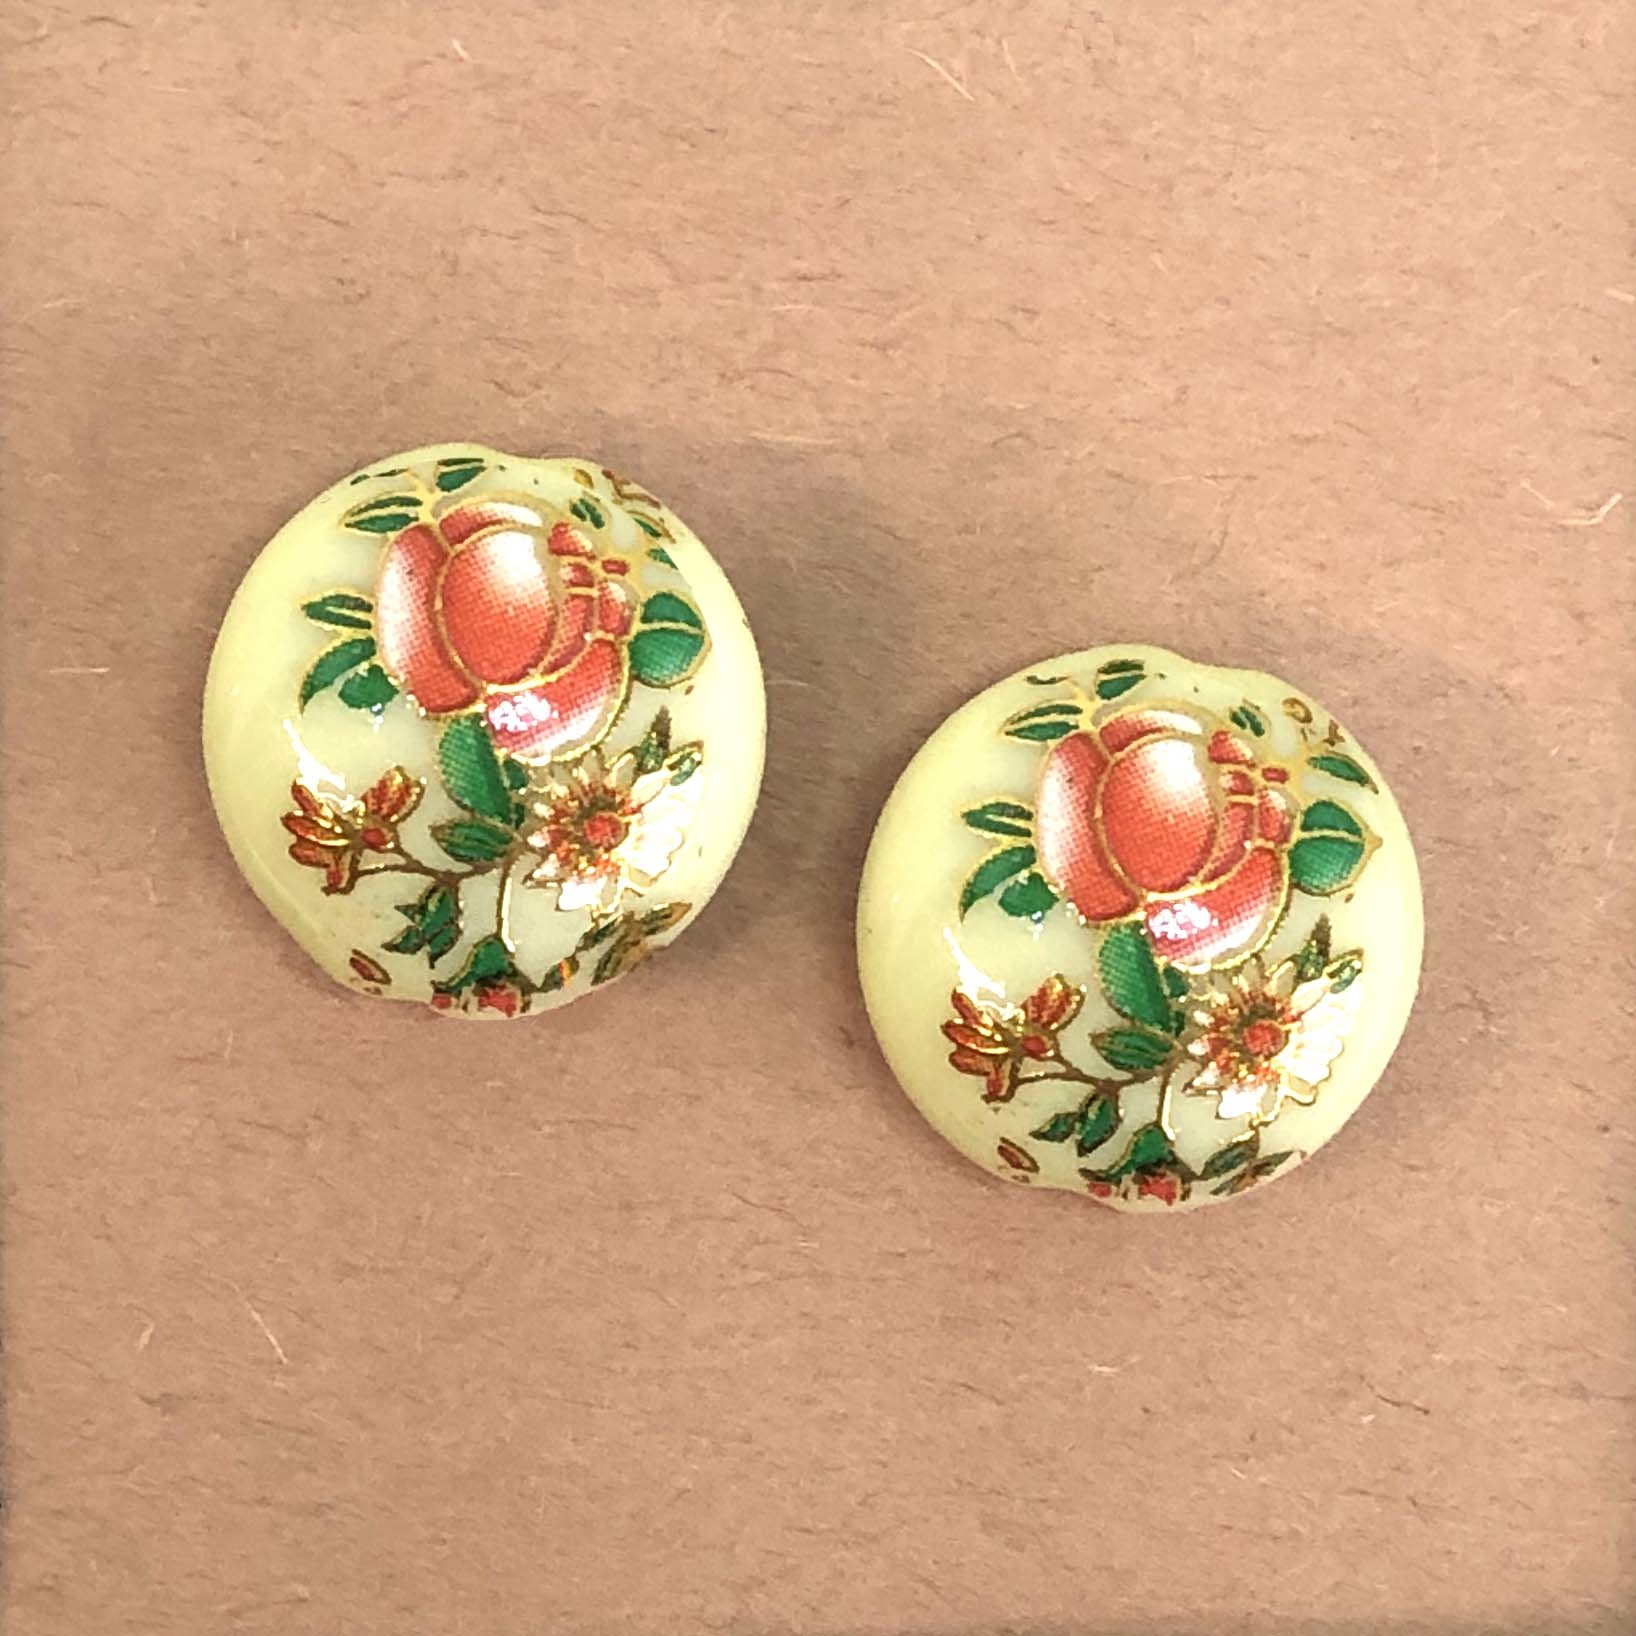 Japanese Tensha beads, painted acrylic beads, beads, 08877, B'sue Boutiques, drilled beads, drilled, vintage jewelry supplies, jewelry making, 16mm, rose flower pattern, rose, cream beads, Tensha beads, vintage beads